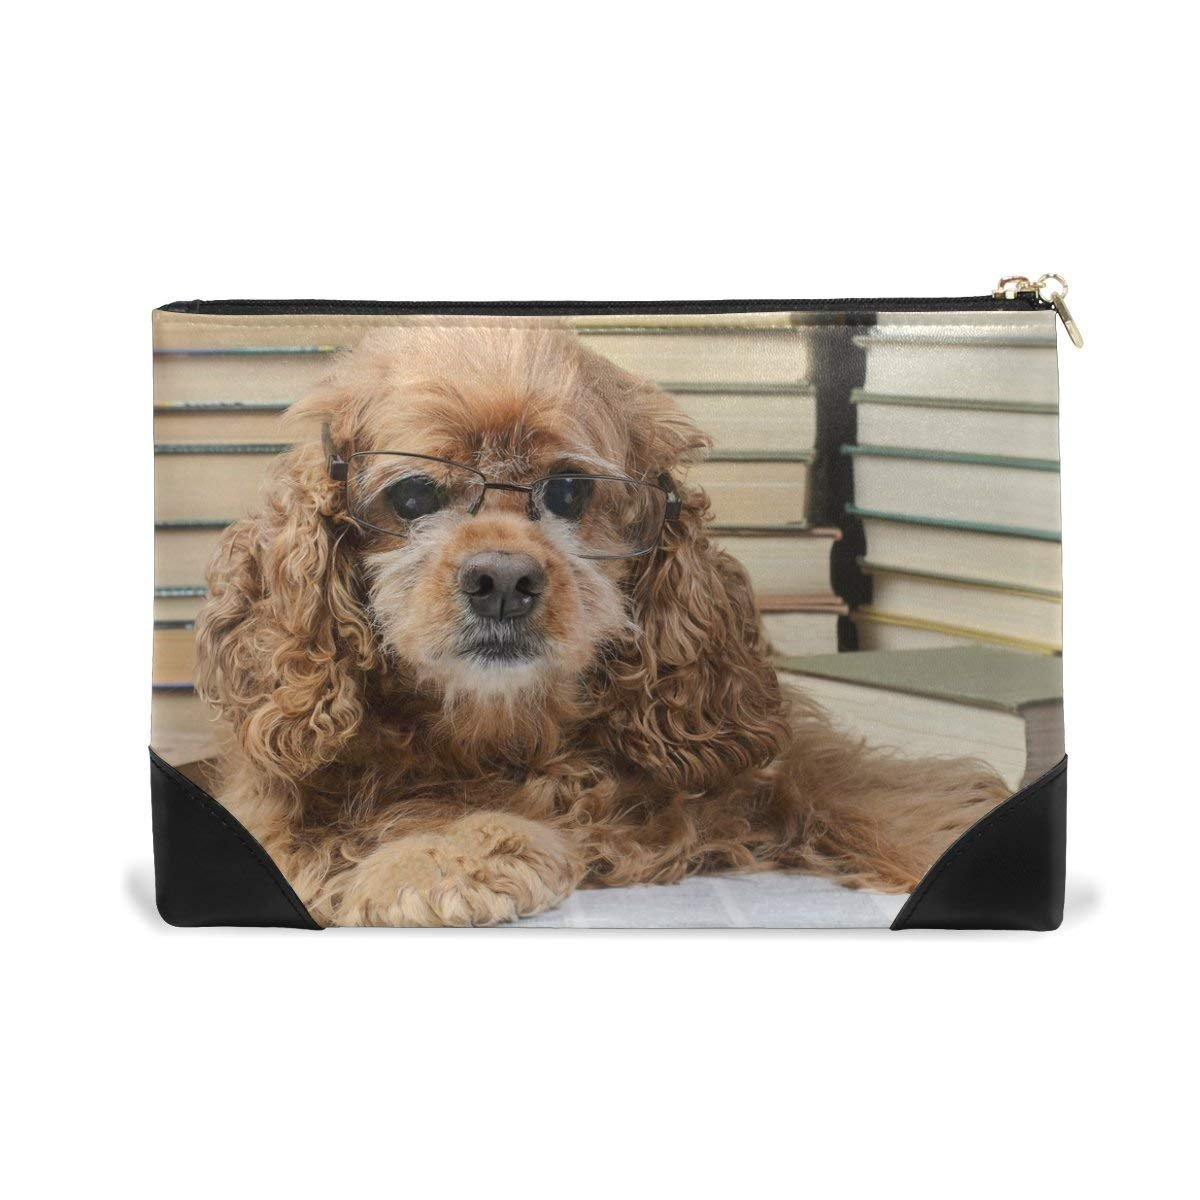 BLEFE Cute Dog Wearing Glasses Books Makeup Cosmetic Bag Pouch Travel Bag for Women Girls